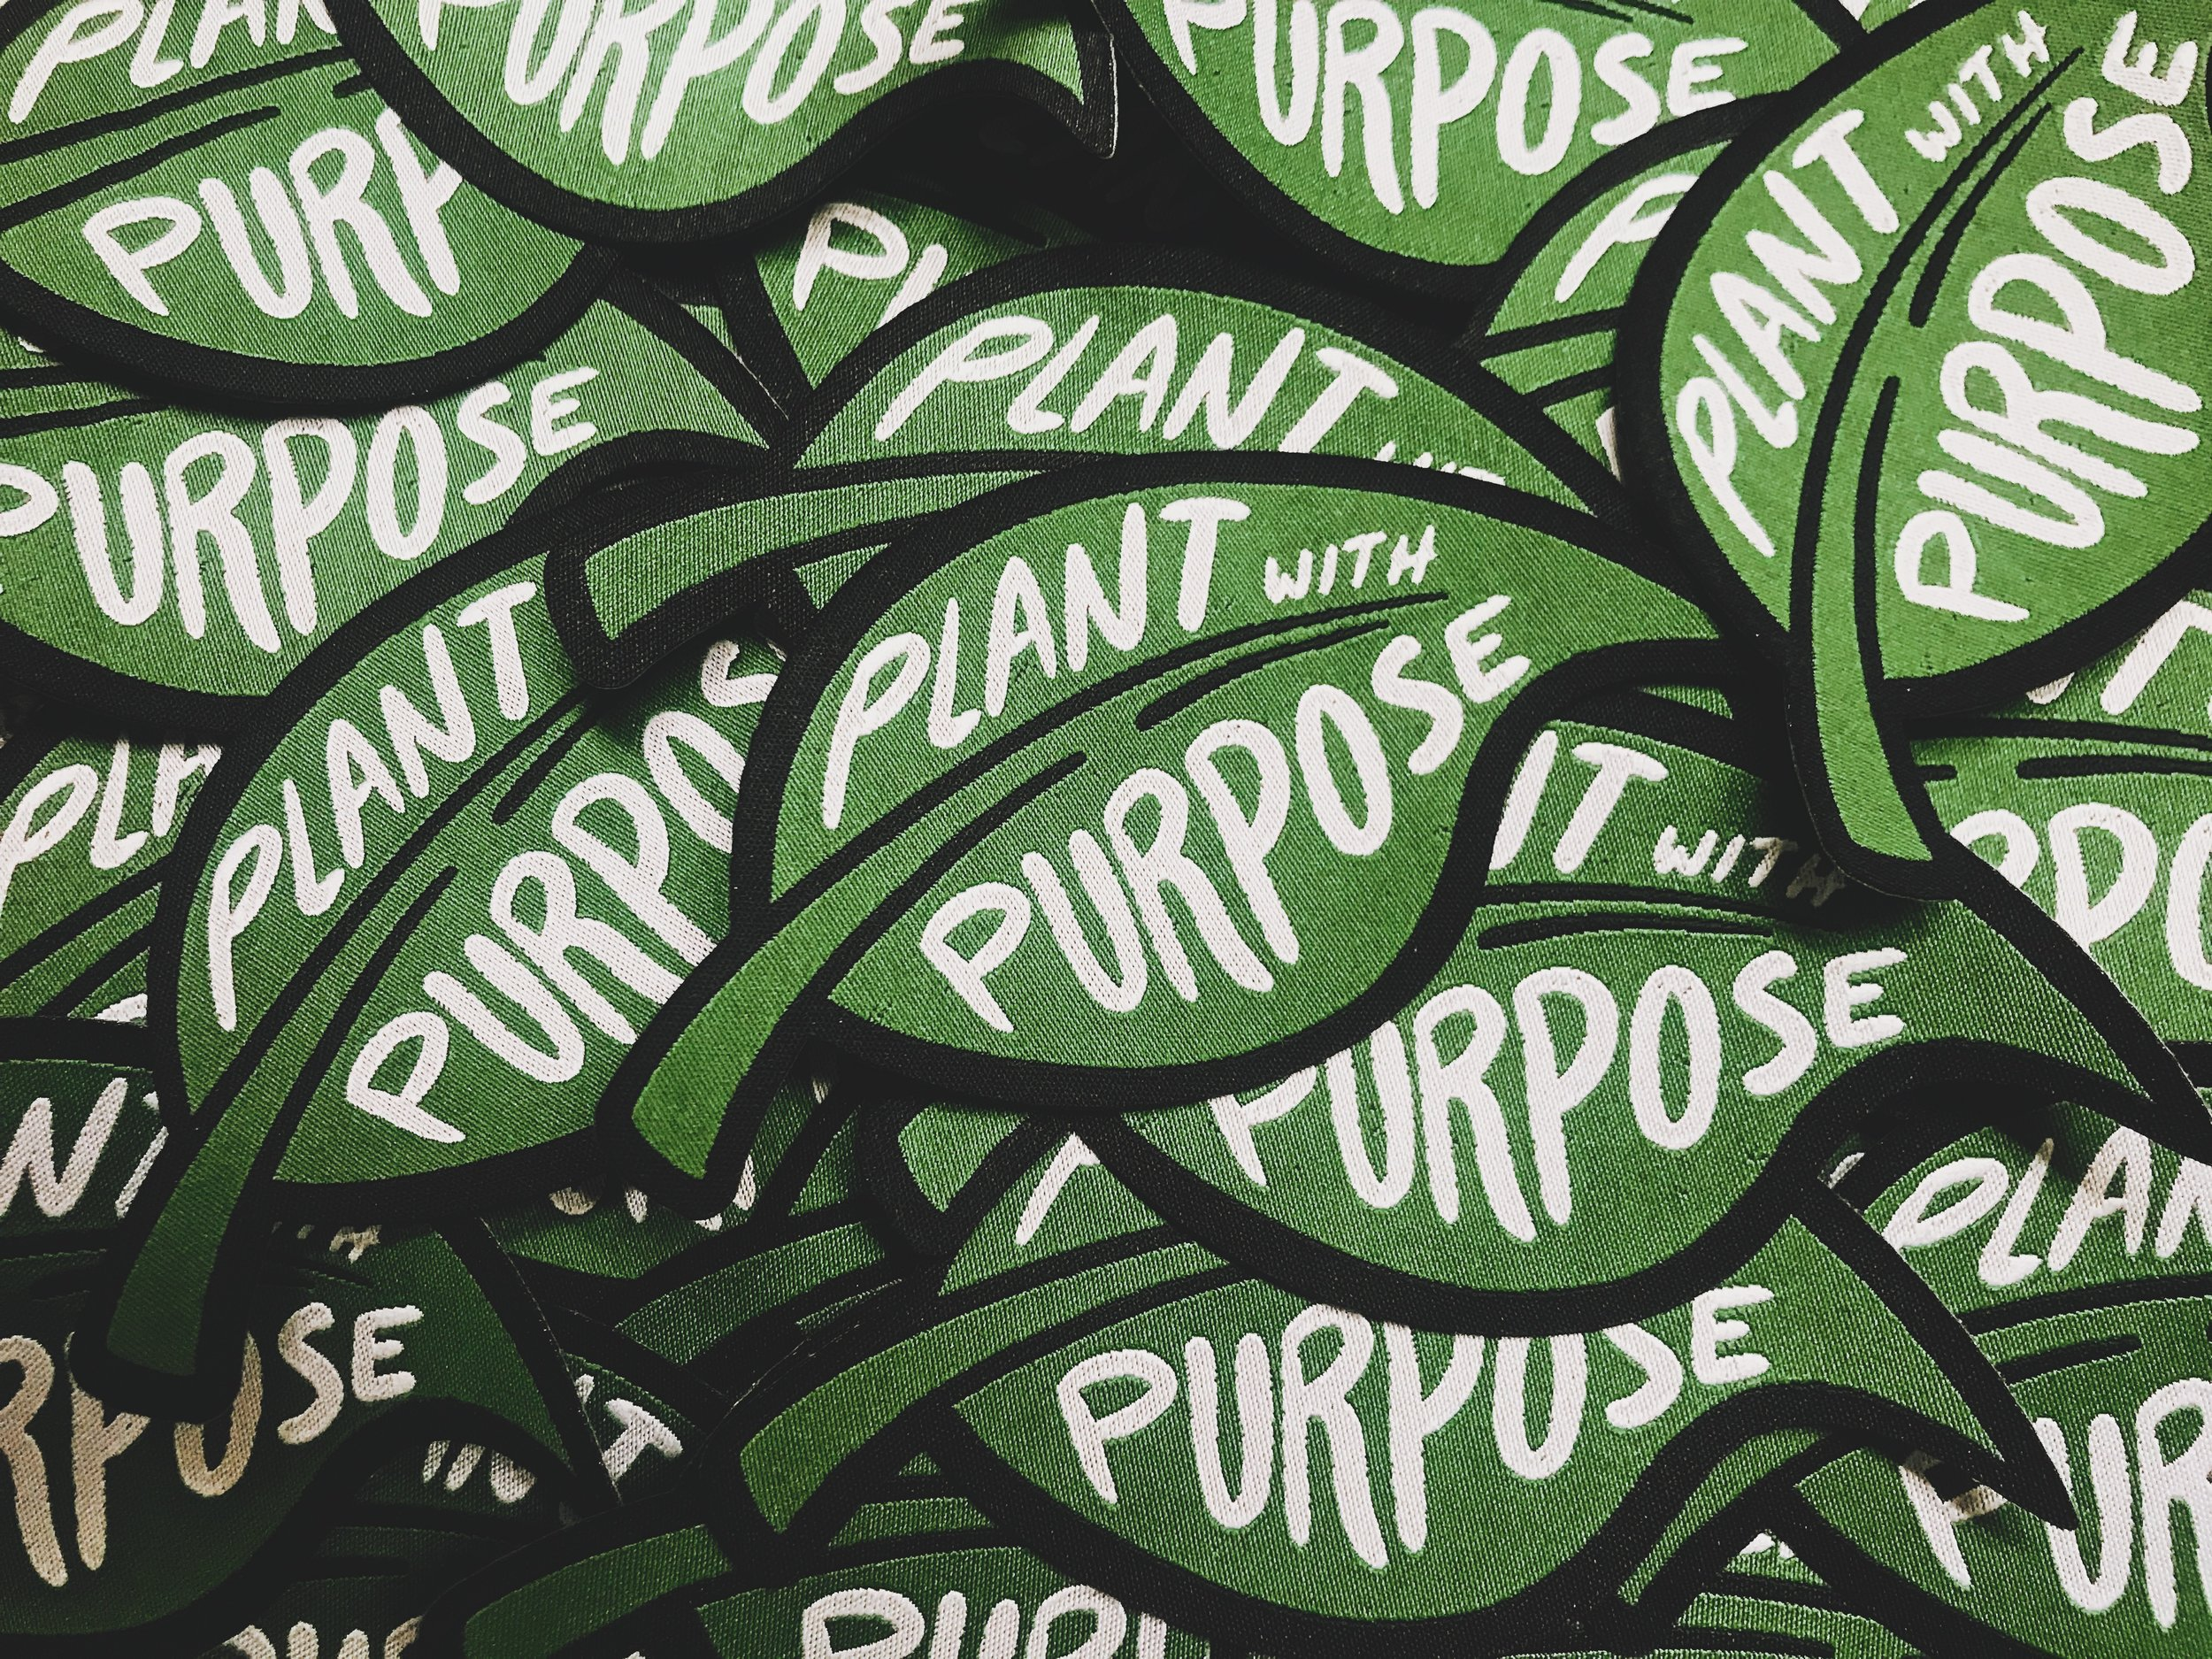 #72 Two Years at Plant With Purpose.JPG